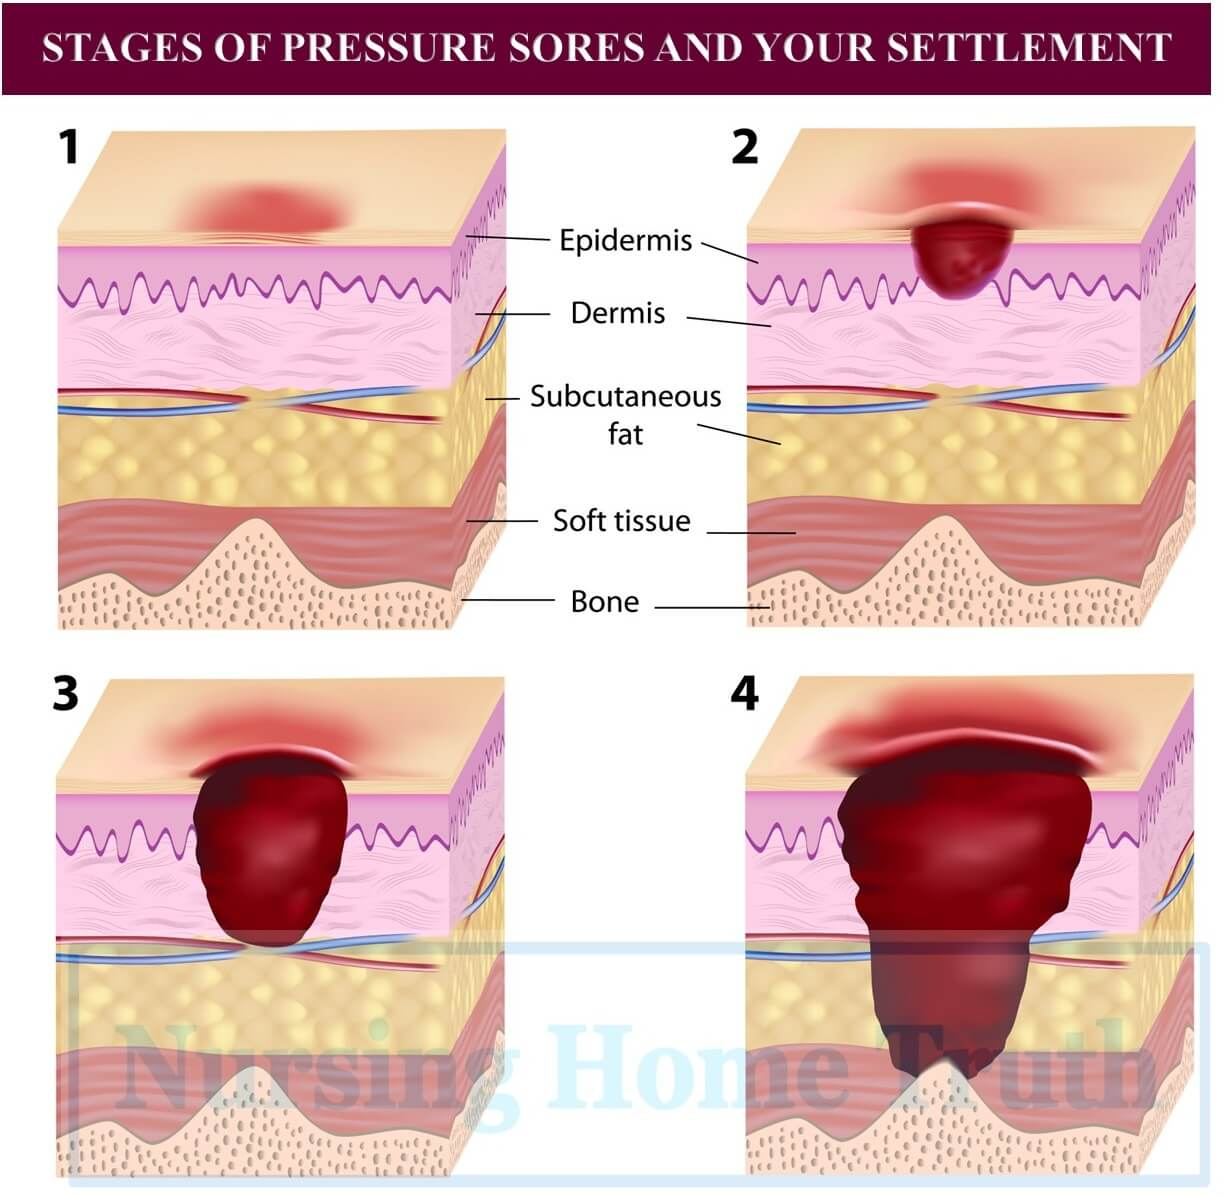 Lawsuits for Stage 4 Pressure Ulcers